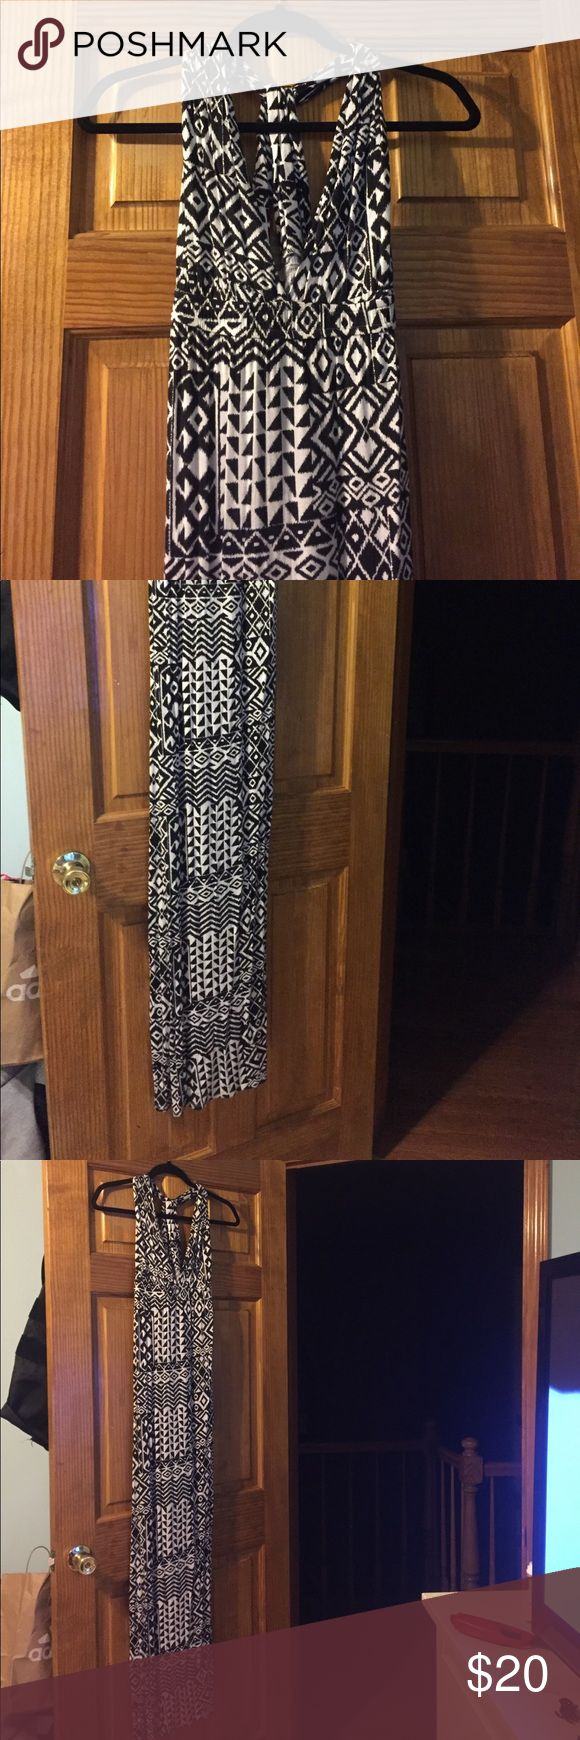 "Tribal Maxi Dress tribal print black and white maxi dress! perfect for any occasion. Back has criss cross detail. No flaws, worn twice. I'm 5'4"" and this falls right above heel. Would be great fit for all! Dresses Maxi"